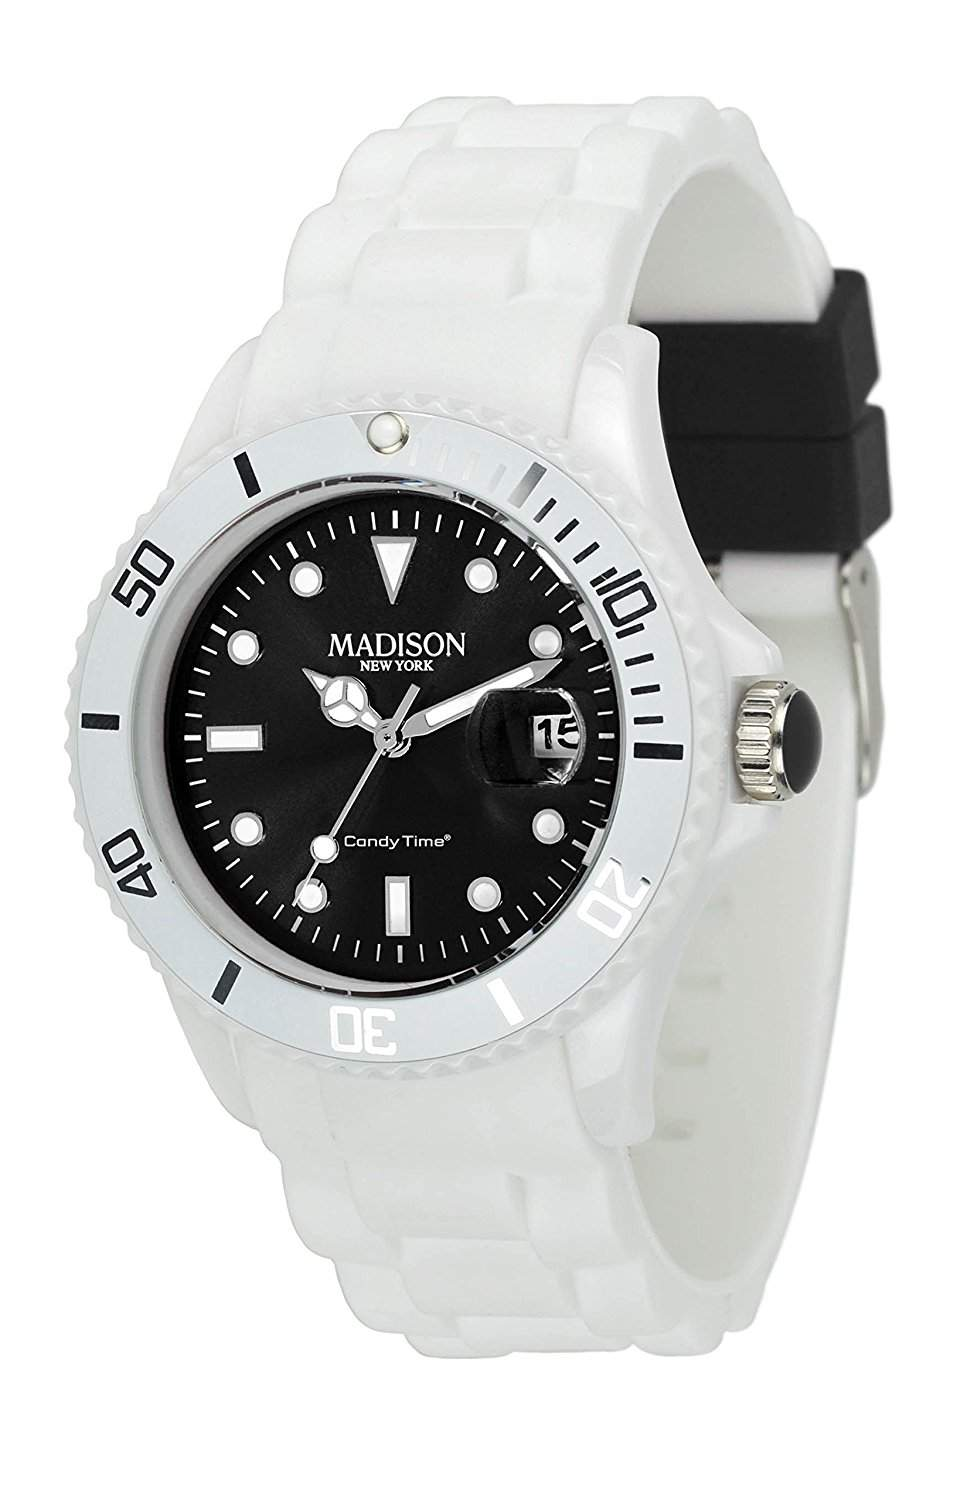 Madison New York Unisex-Armbanduhr Candy Time White Fashion Analog Quarz Silikon U4359A1